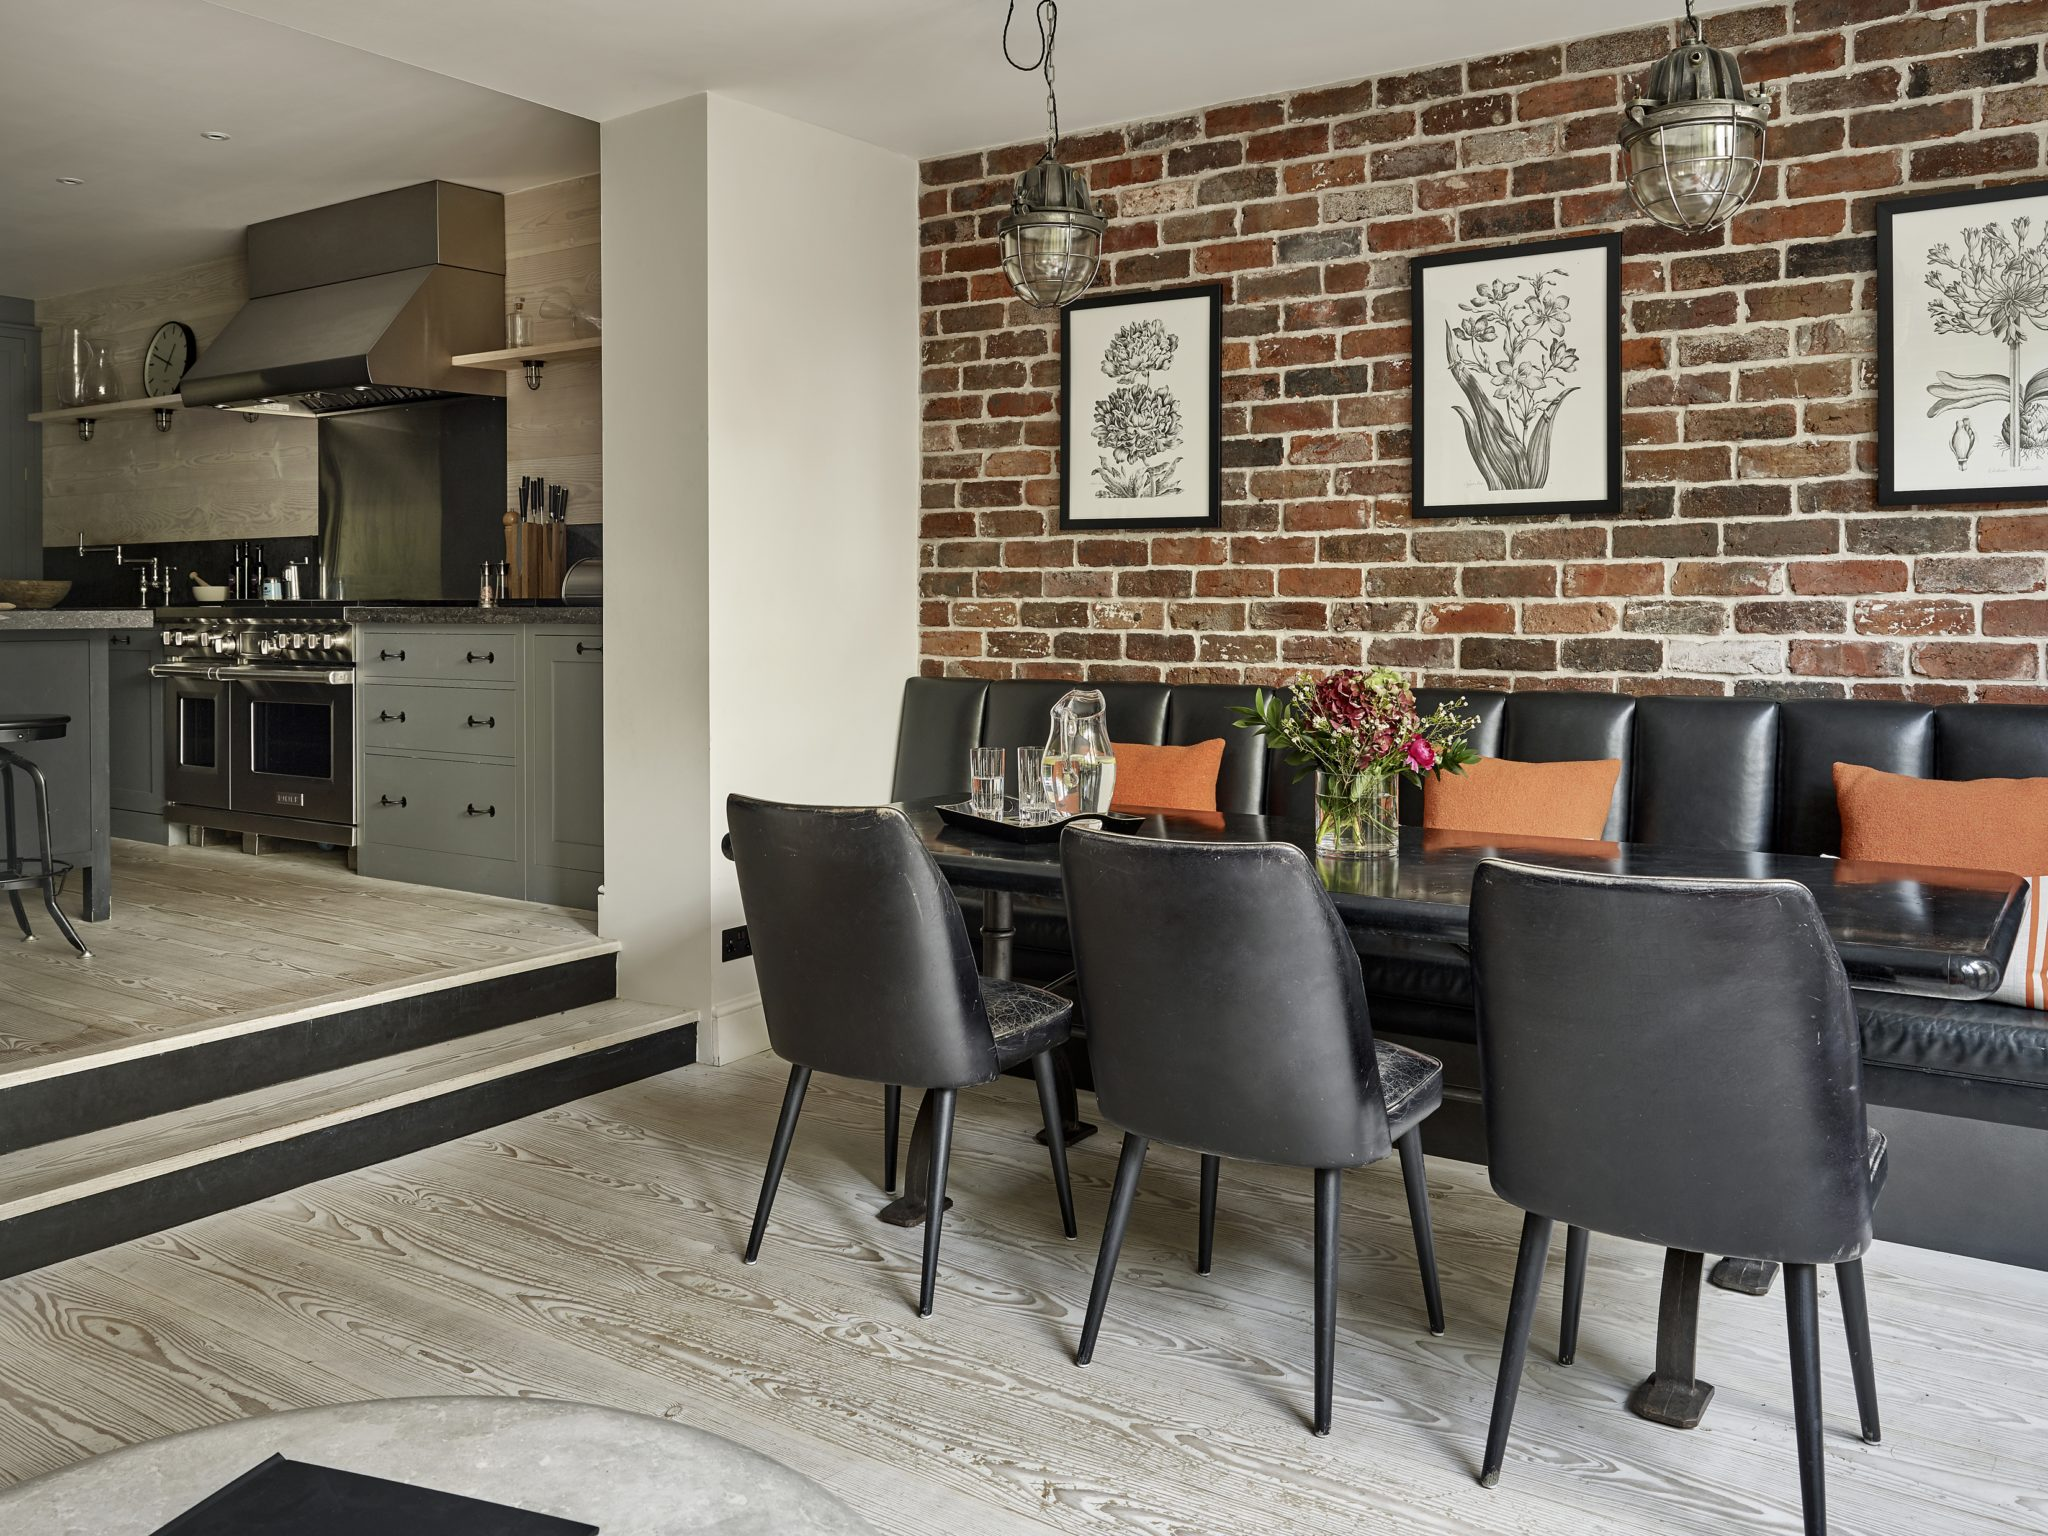 Dining area through to kitchen. Kensington, London by Caz Myers